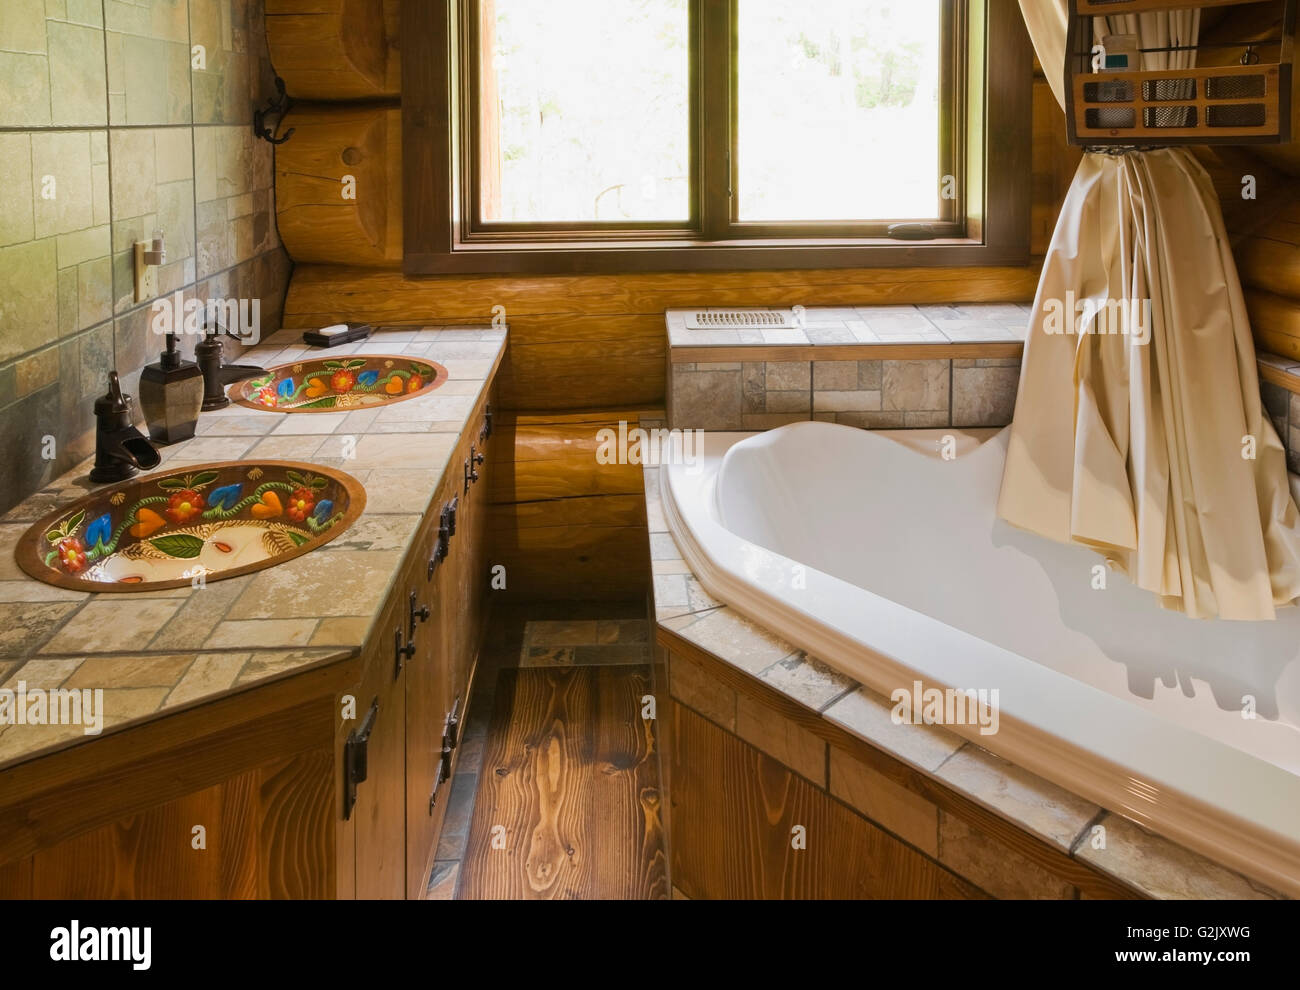 Ceramic Tile Countertop Inlaid Hand Painted Copper Sinks Bathtub In Main Bathroom Inside A Handcrafted Red Cedar Log Home